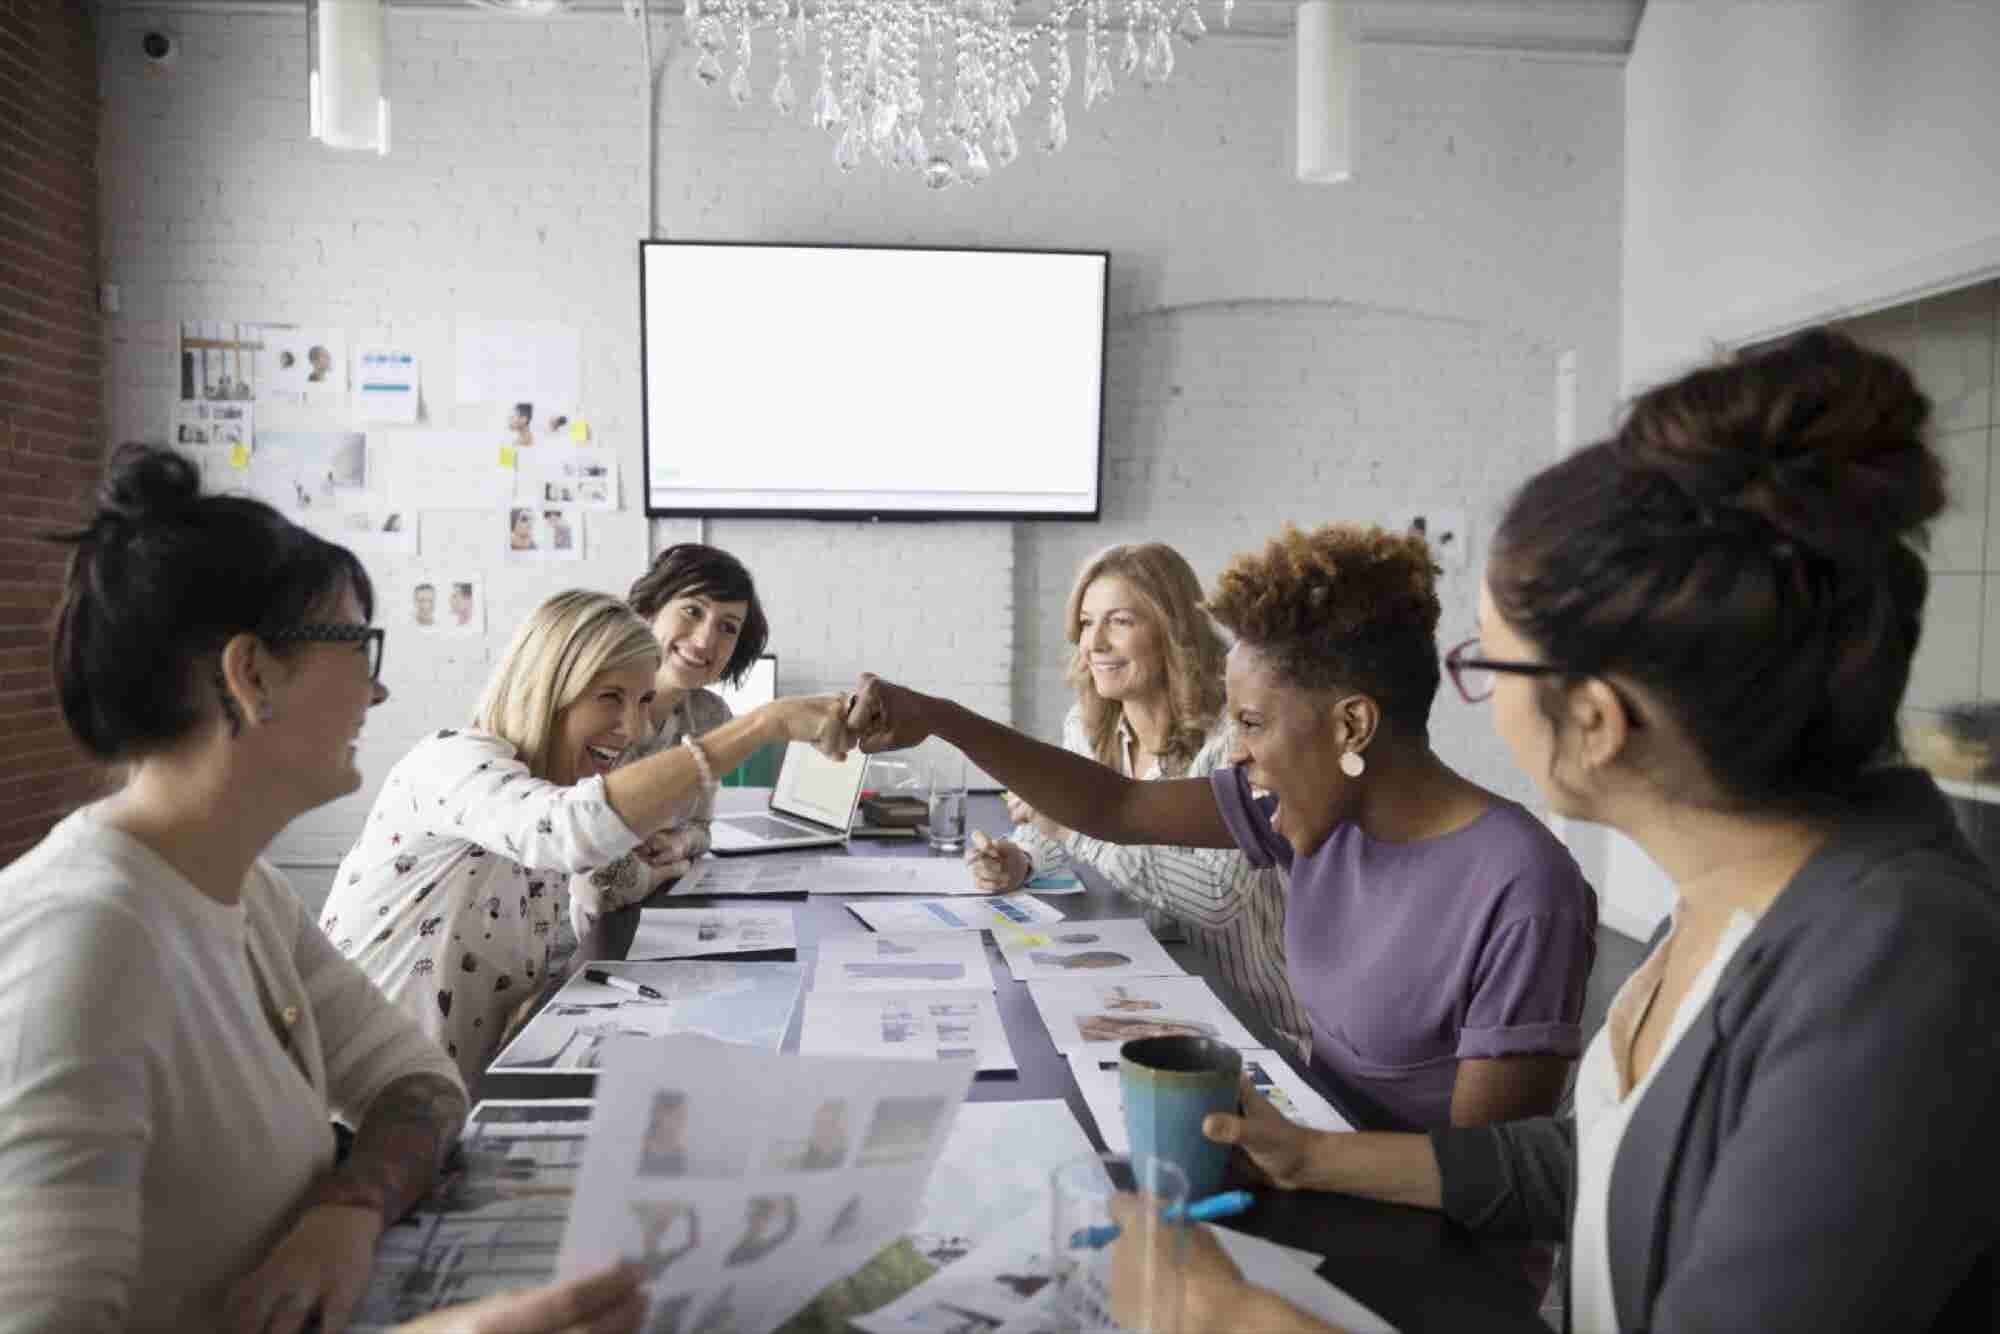 How to Lead Your Team to Achieve the Goals No Individual Ever Could